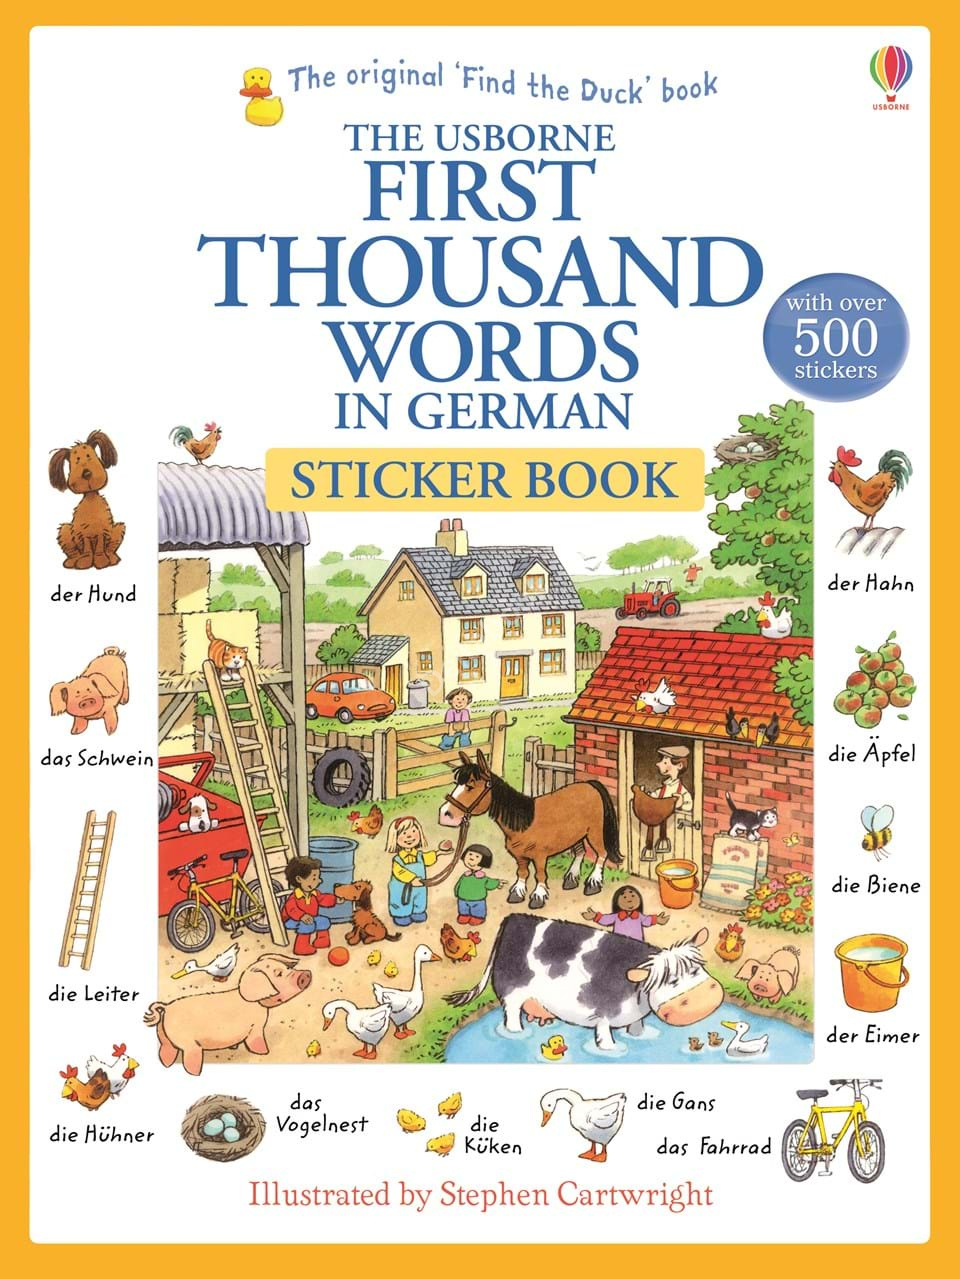 First thousand words in German Sticker Book  Стикербук